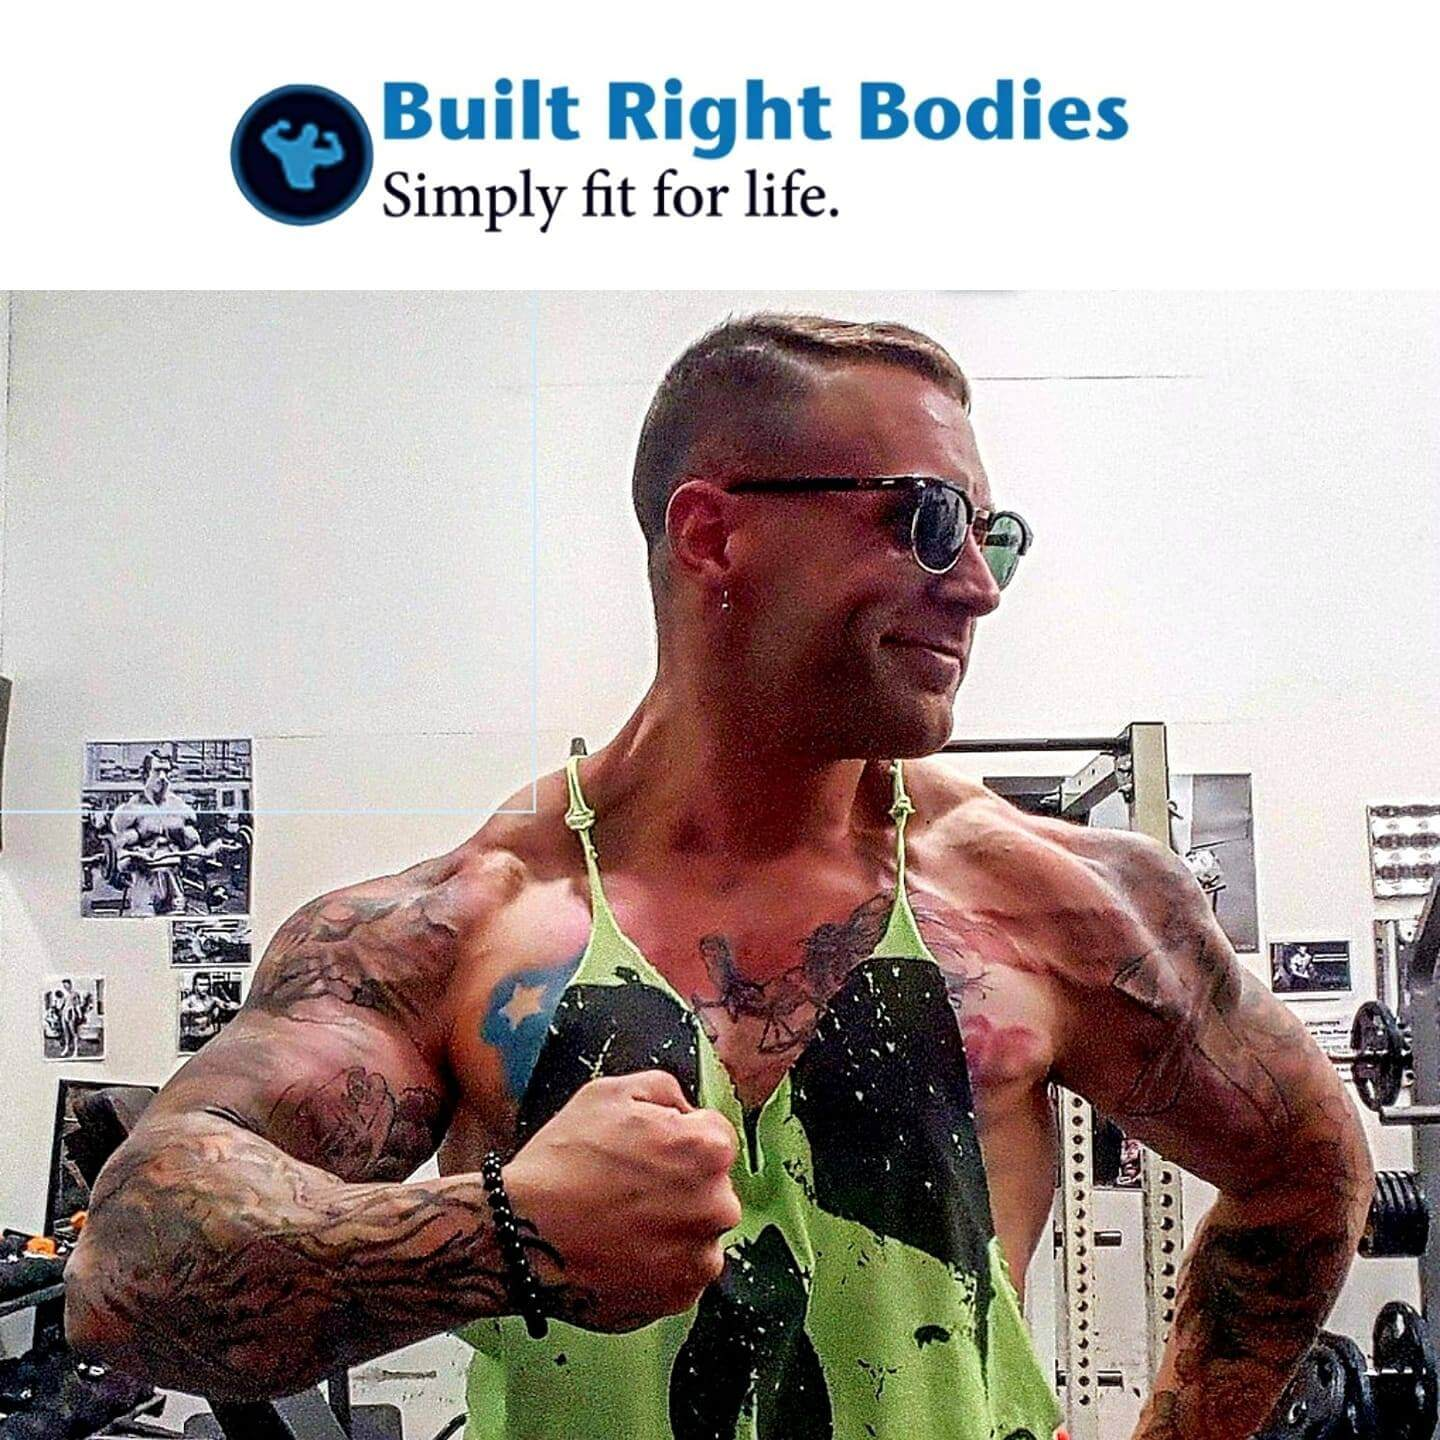 Built Right Bodies